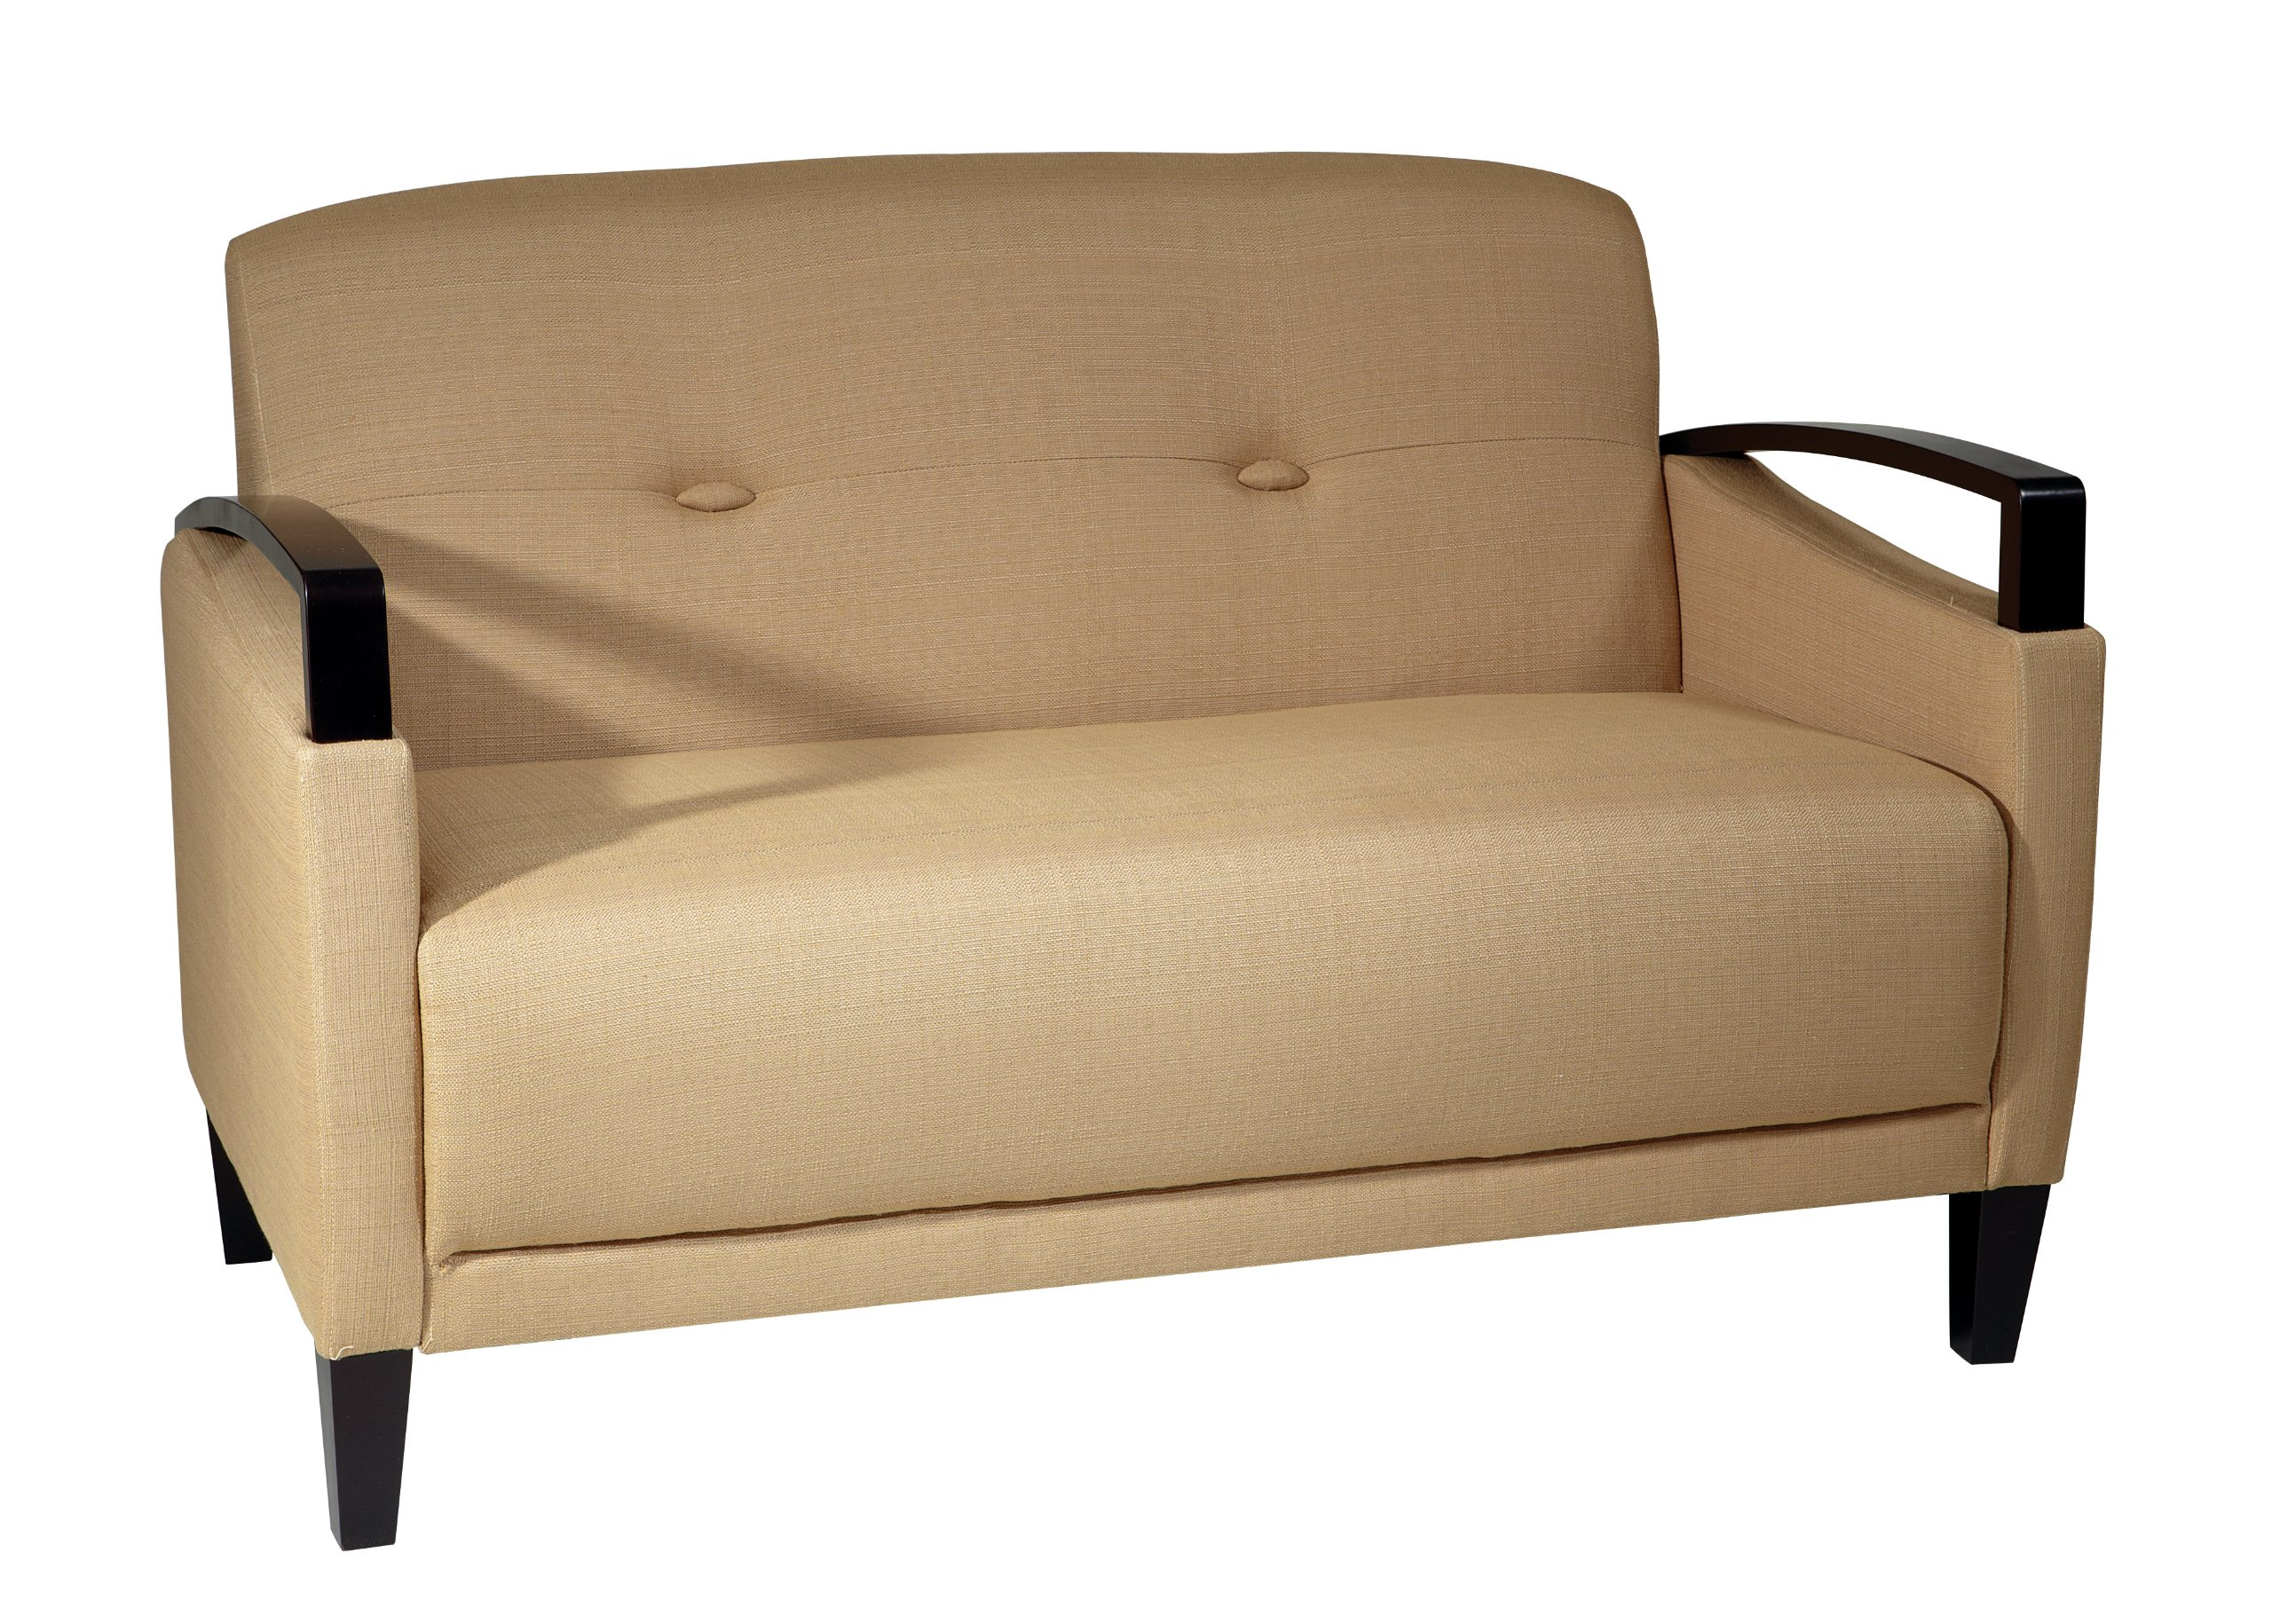 Avenue Six AVE SIX Main Street Loveseat with Interlace Weave Fabric and Espresso Finish Wood Accents, Woven Wheat